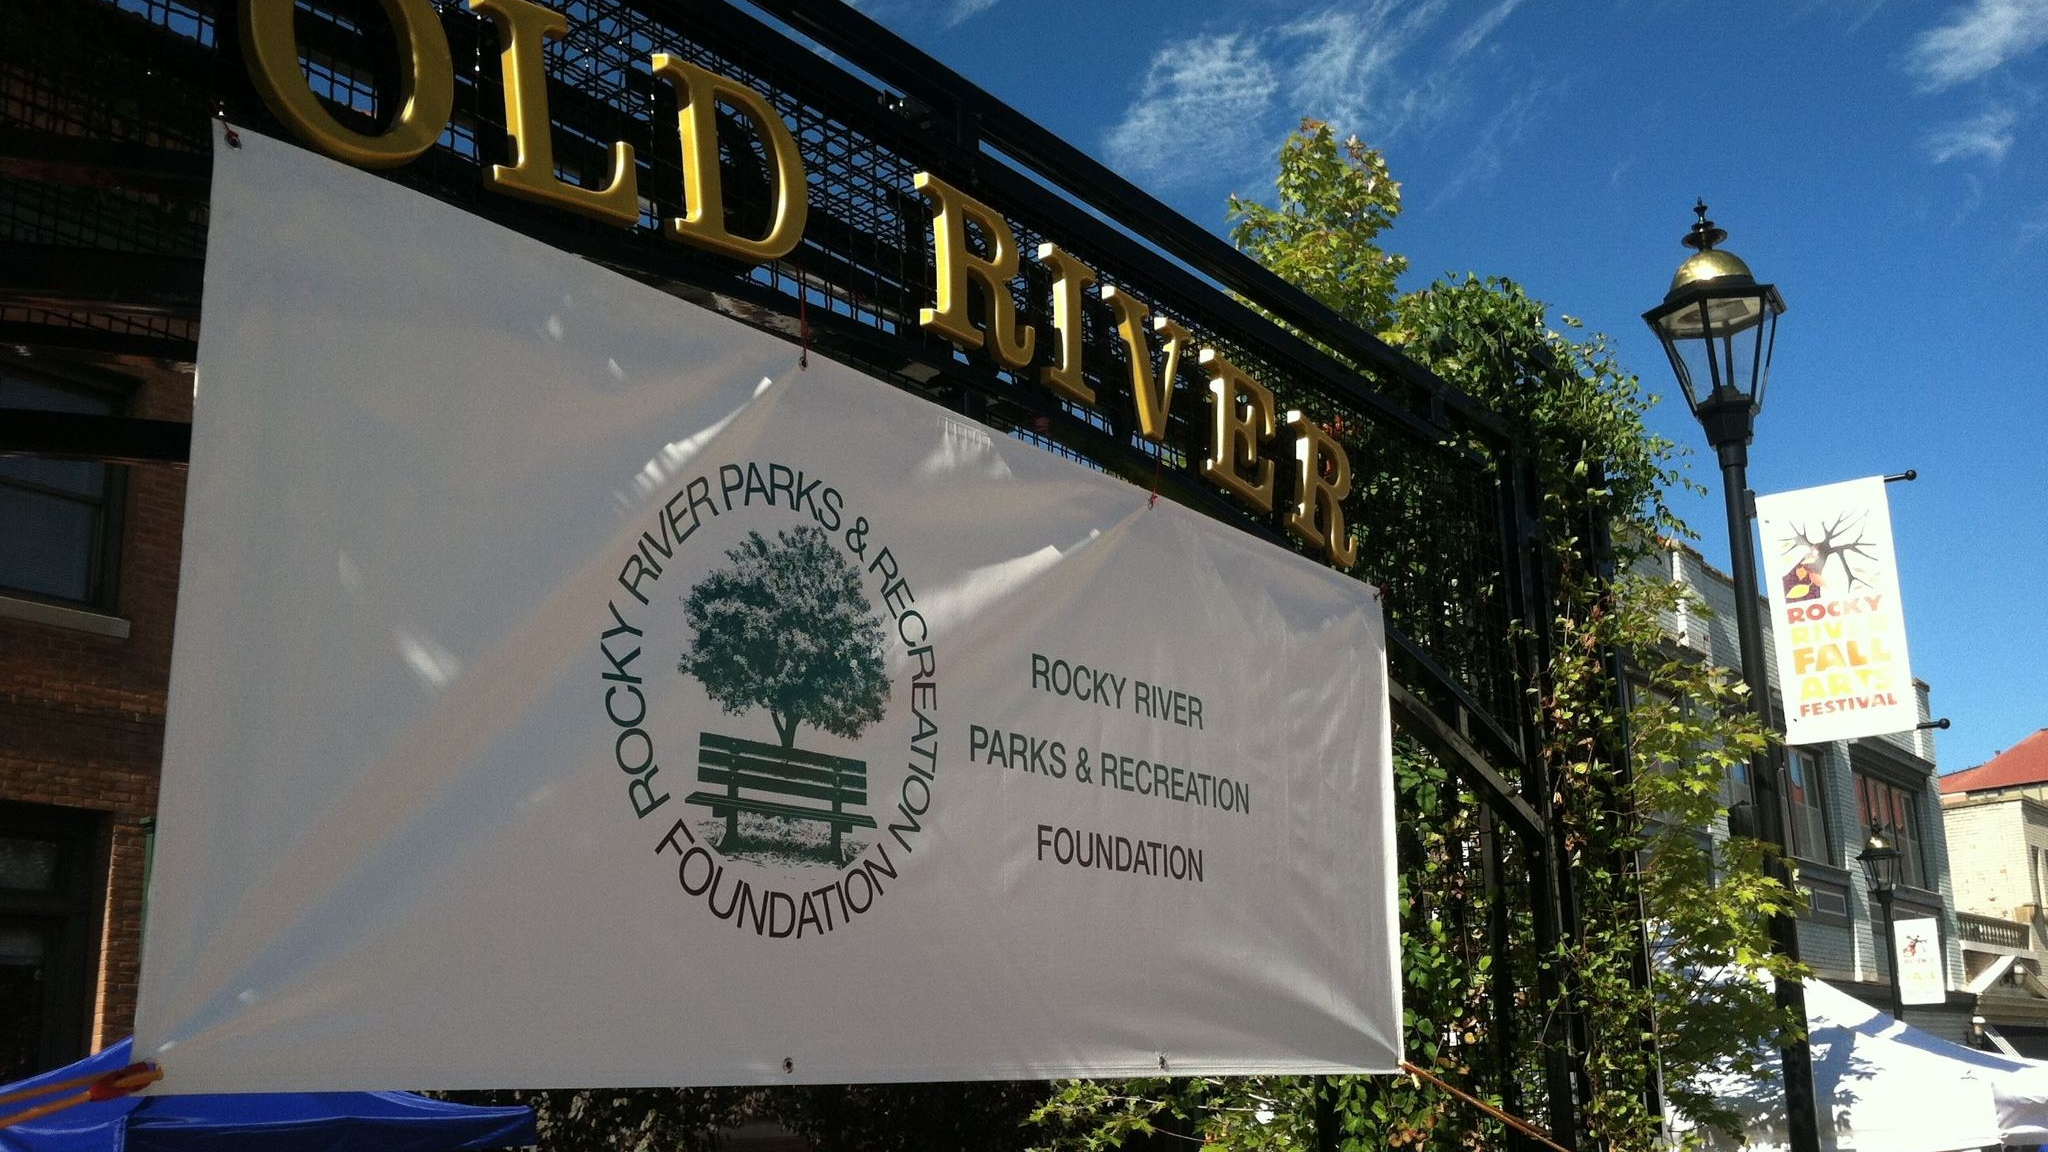 About Rocky River Parks & Recreation Foundation